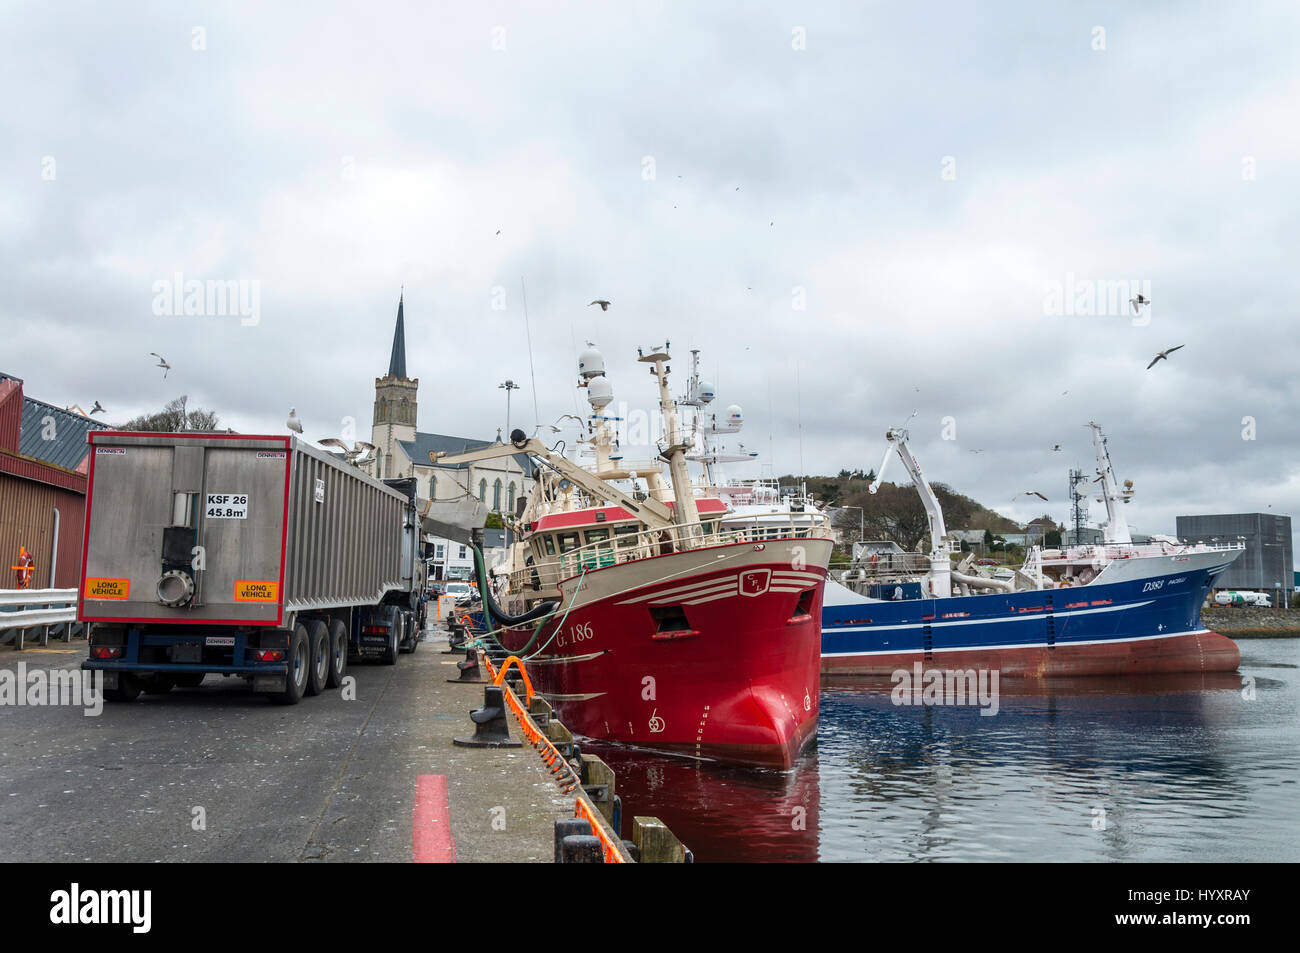 Unloading a fishing trawler boat in Killybegs Harbour, County Donegal, Ireland - Stock Image